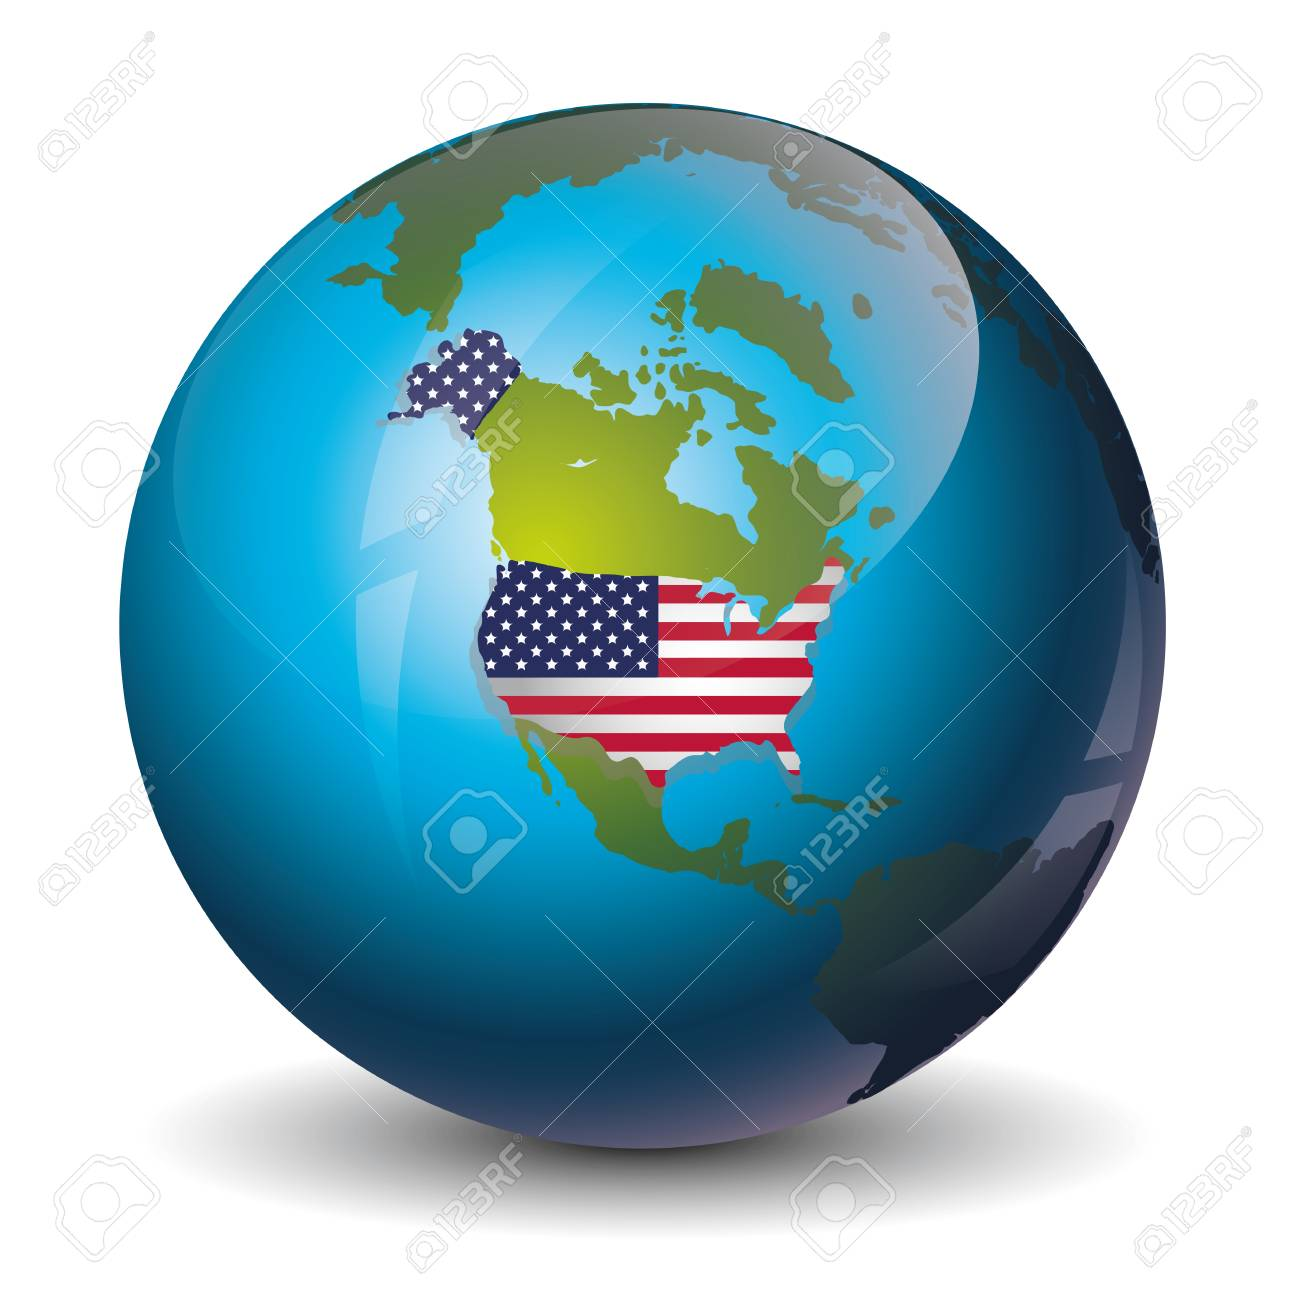 icon of the USA map on the big globe Globe Map Of Usa on earth map usa, globe earth map, globe world map, globe map of yemen, globe map of france, globe map of israel, globe map of egypt, globe map of haiti, globe map of netherlands, globe map of new zealand, globe map of holland, globe map of malaysia, globe canada, new 7 wonders of usa, globe map of greece, globe map of guyana, map from usa,